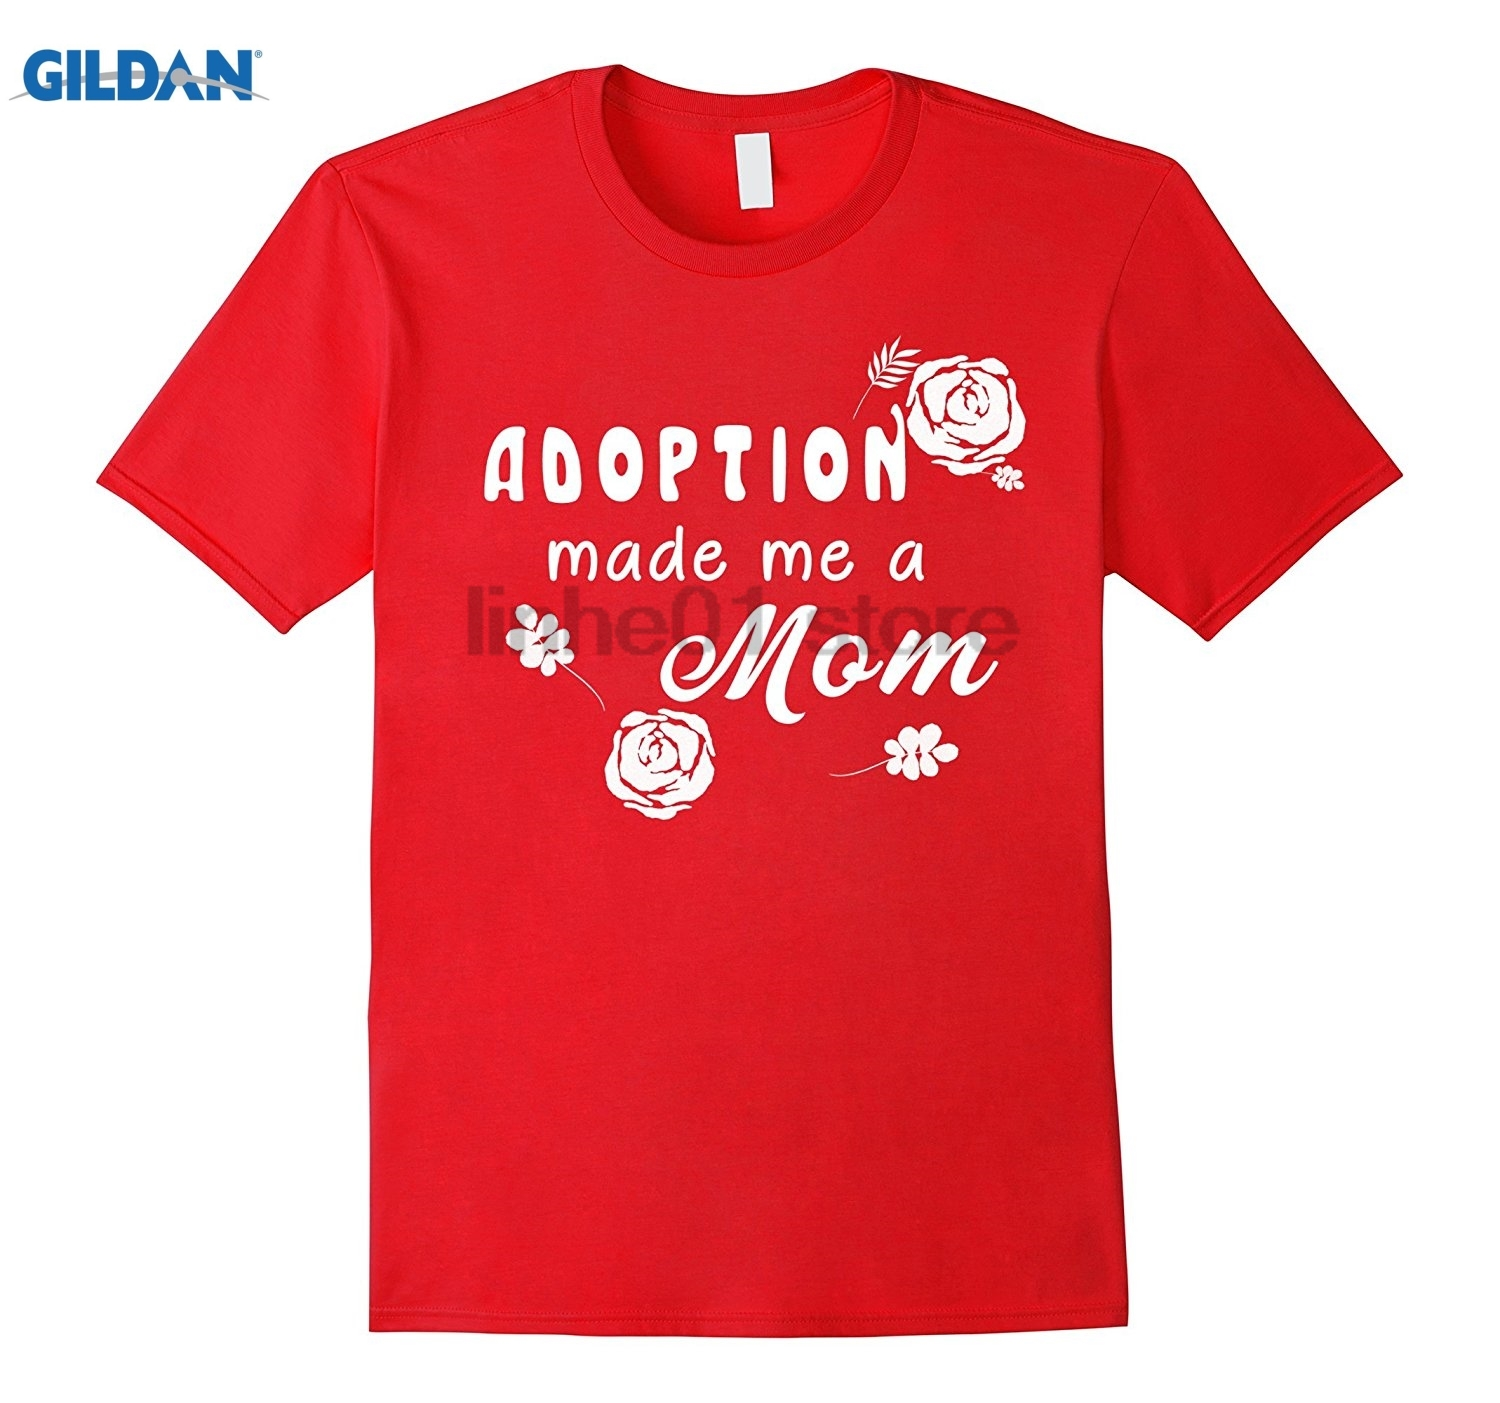 GILDAN Christian T-Shirt Adoption Made Me a Mom Christian Tee Gift Hot Womens T-shirt summer dress T-shirt